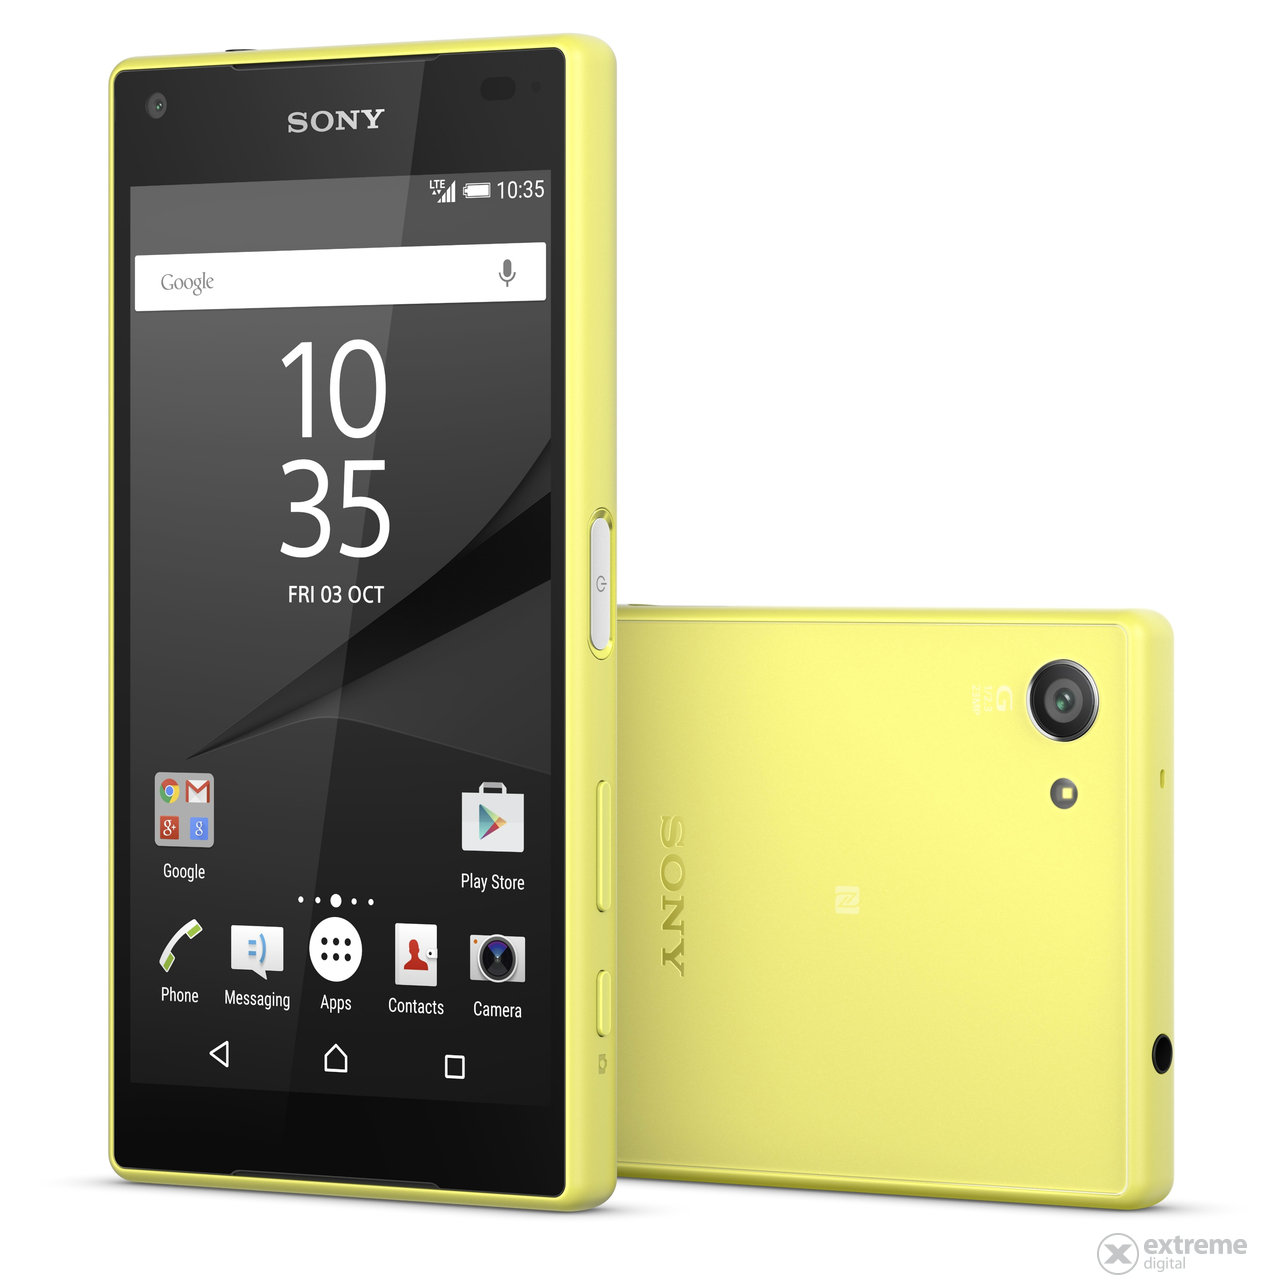 sony-xperia-z5-compact-kartyafuggetlen-okostelefon-yellow-android_54c974f4.jpg